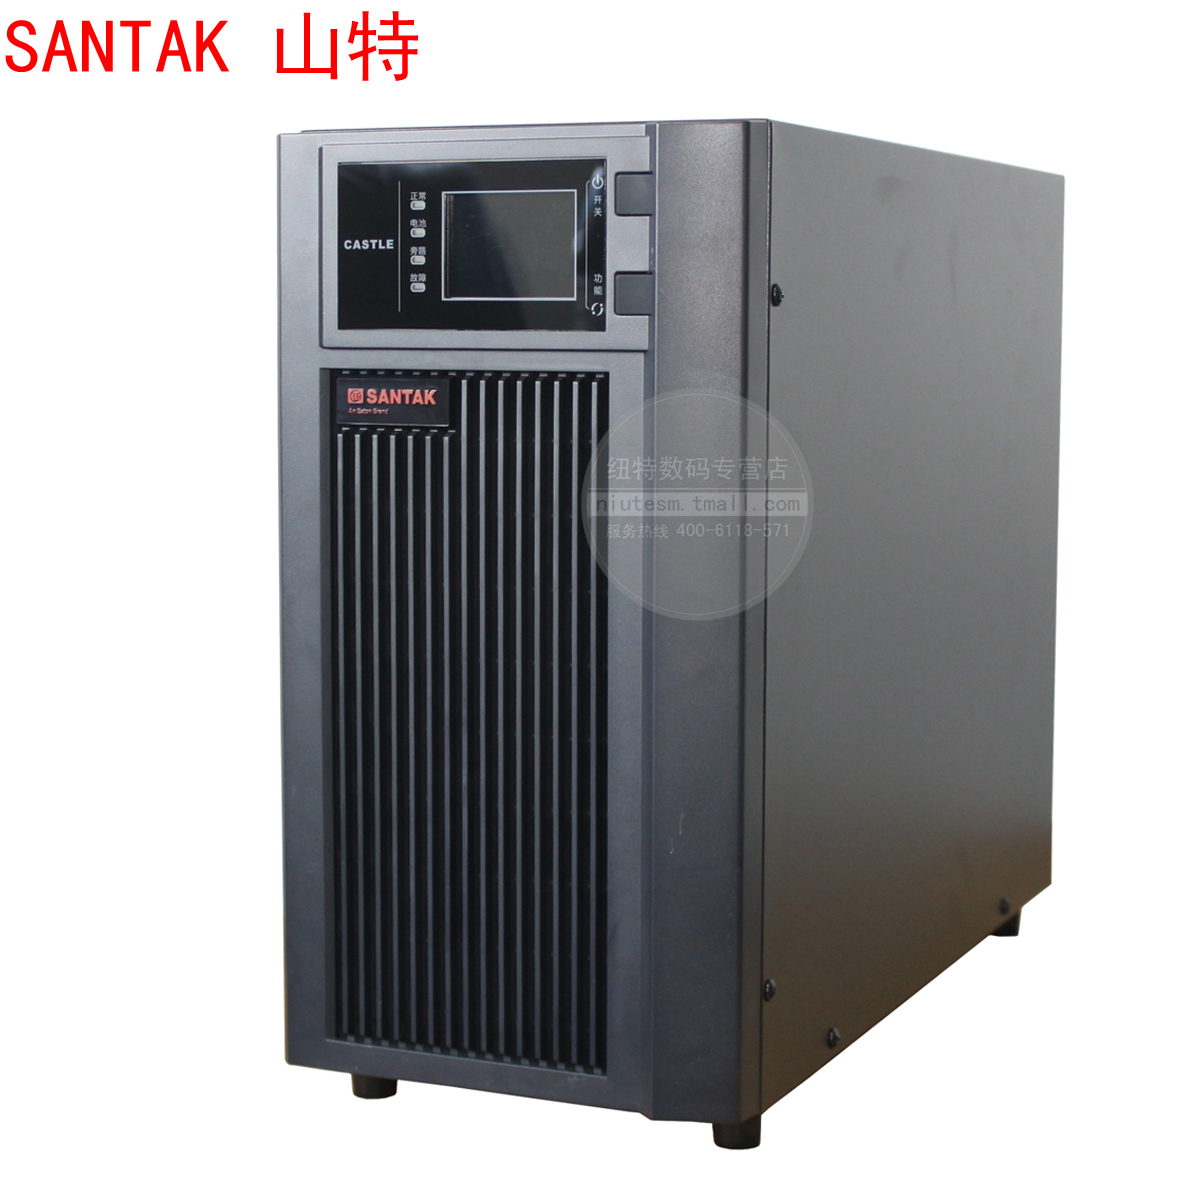 Santa UPS Uninterruptible Power Supply C6KS Half-hour 6KVA 5400W Regulator Battery 17AH 16